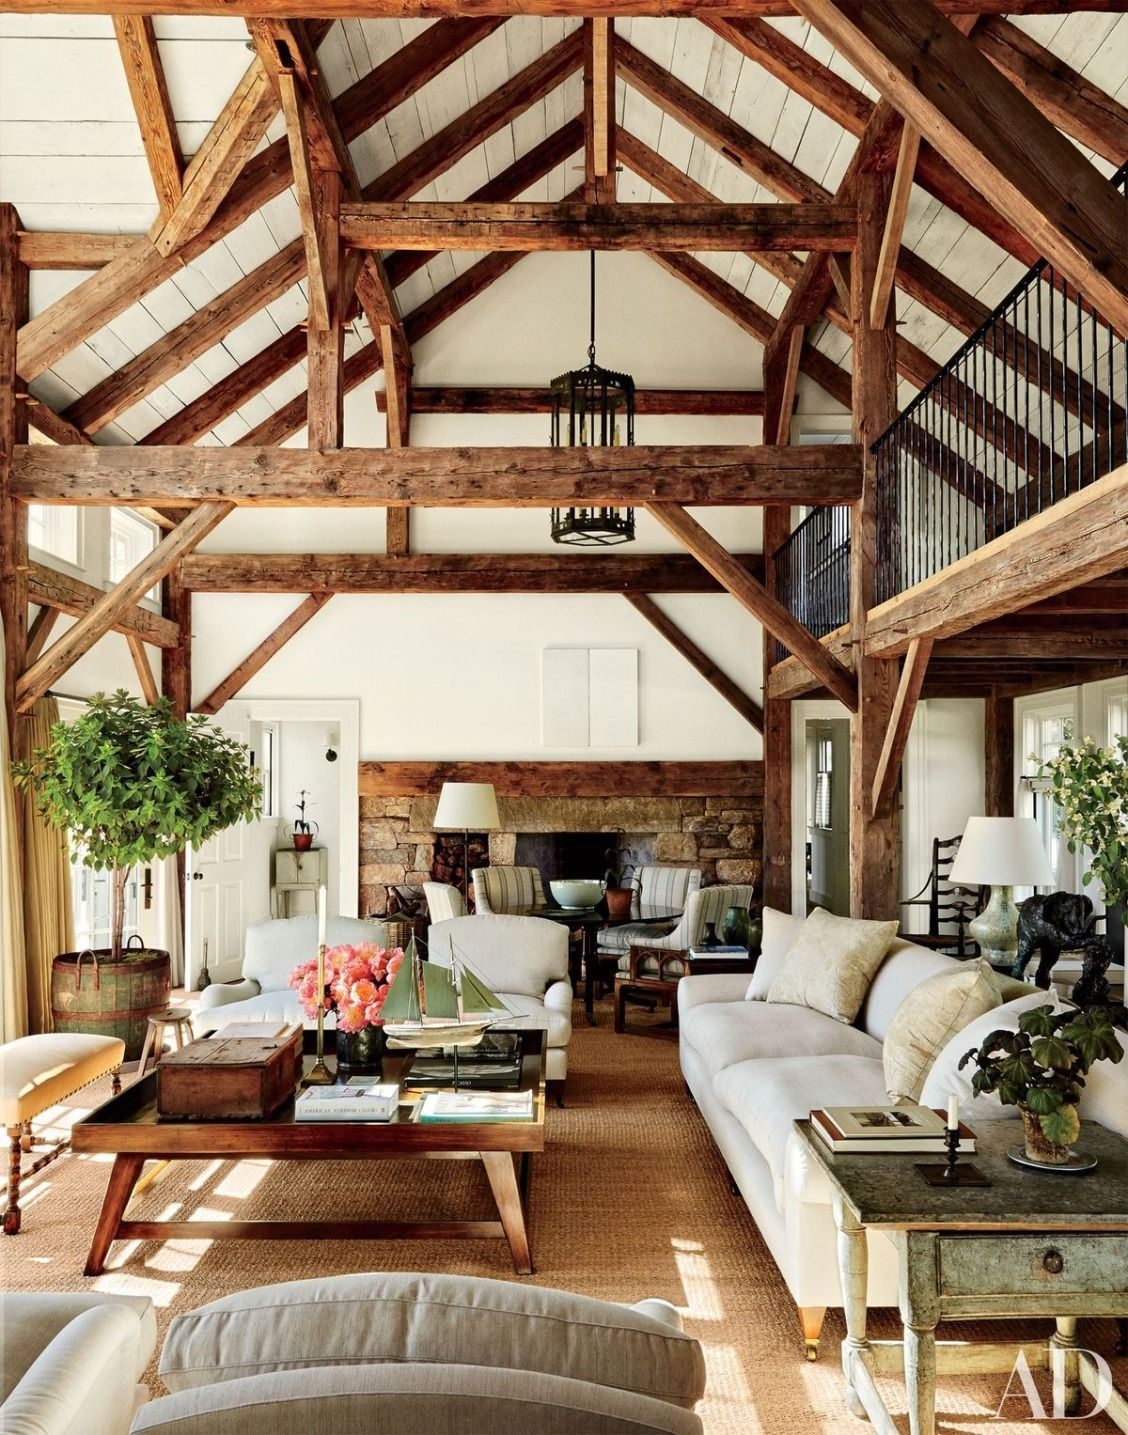 Pics of Homes with Wood Beam Ceilings